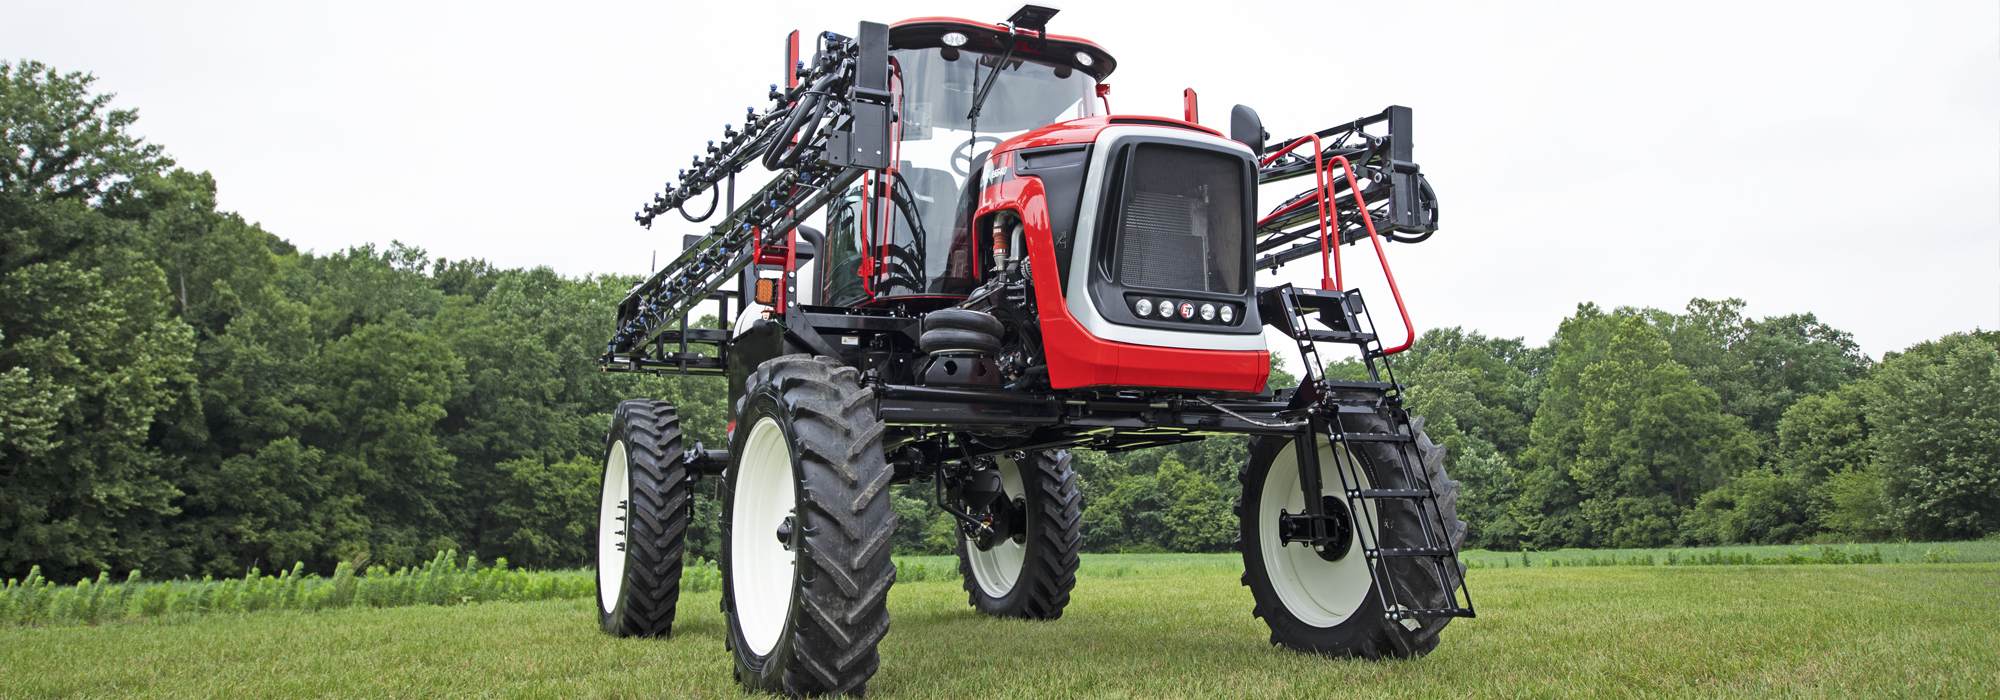 The AS640 sprayer